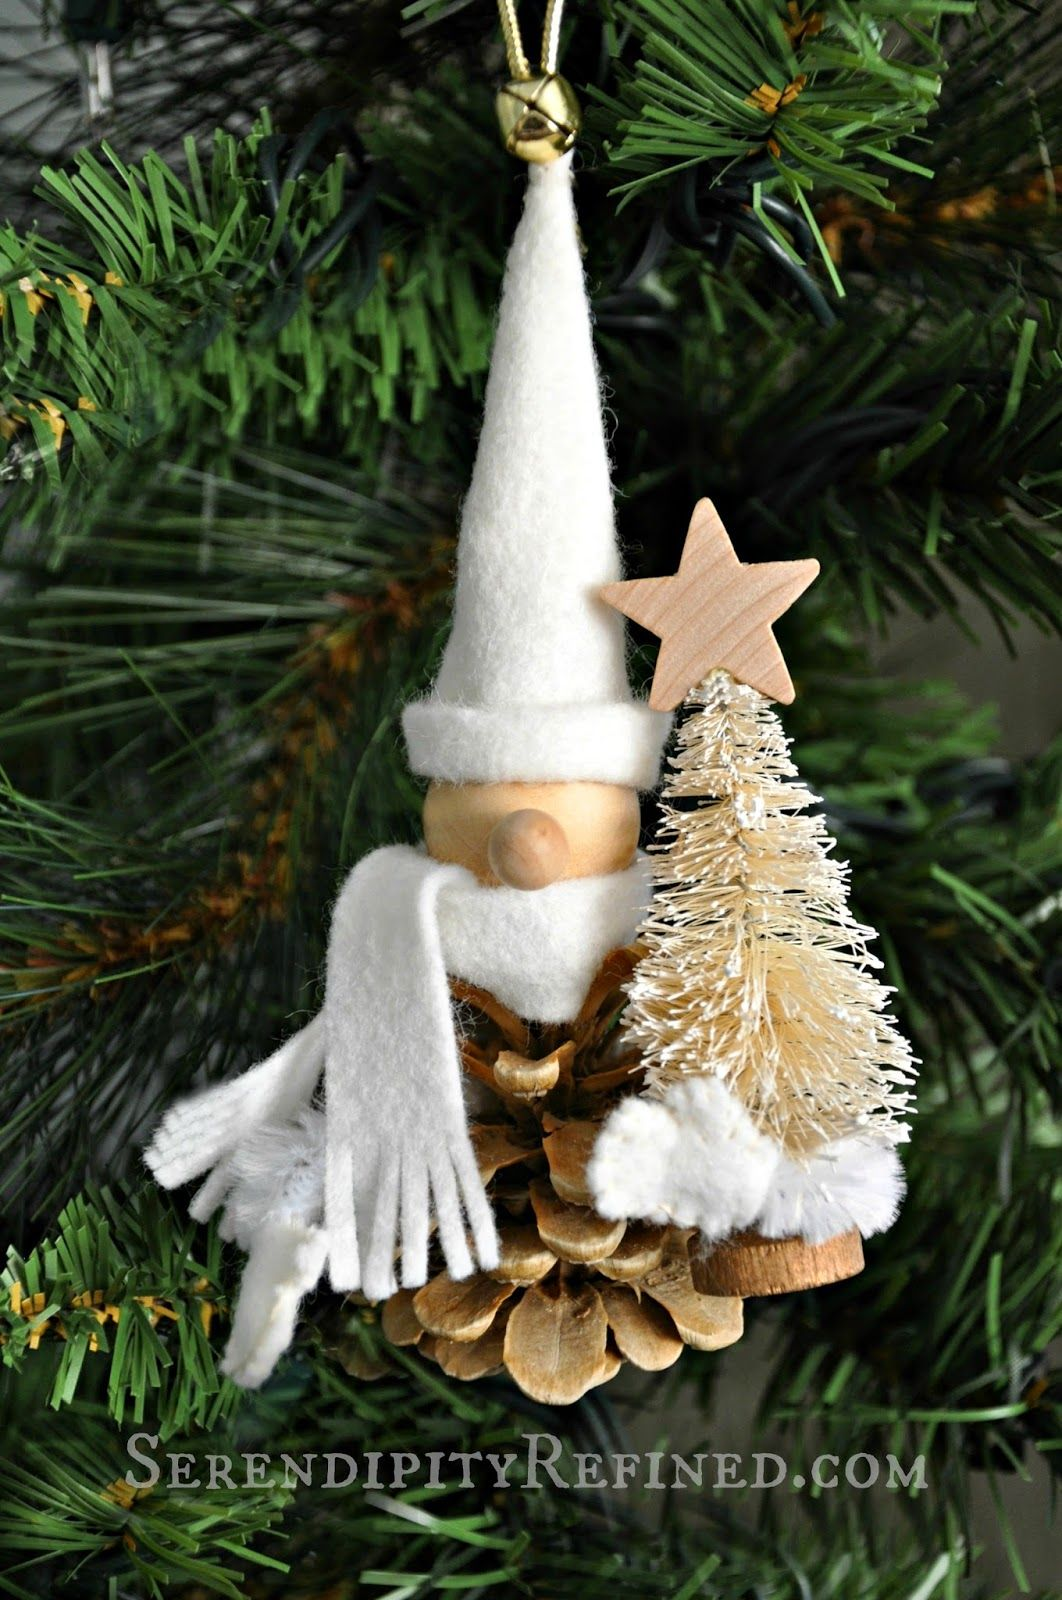 Bleached Pinecone Woodland Gnome Ornament Day 9 Natural Christmas Ornaments Christmas Crafts Xmas Ornaments